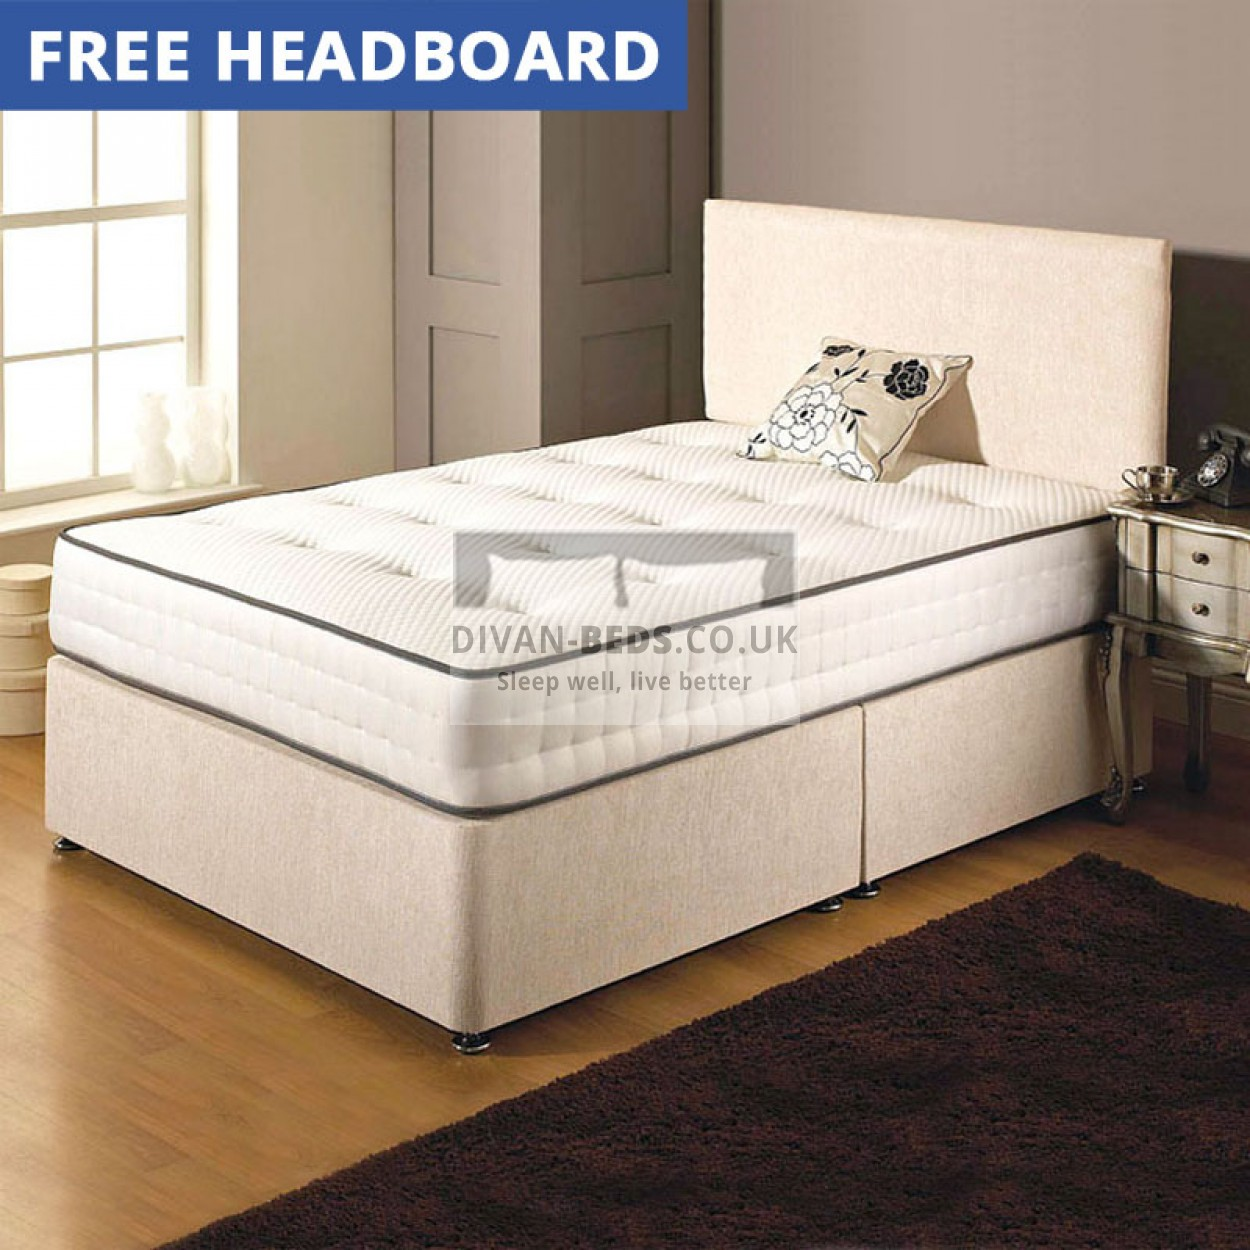 Charlie Divan Bed With Spring Memory Foam Mattress Guaranteed Cheapest Free Fast Delivery